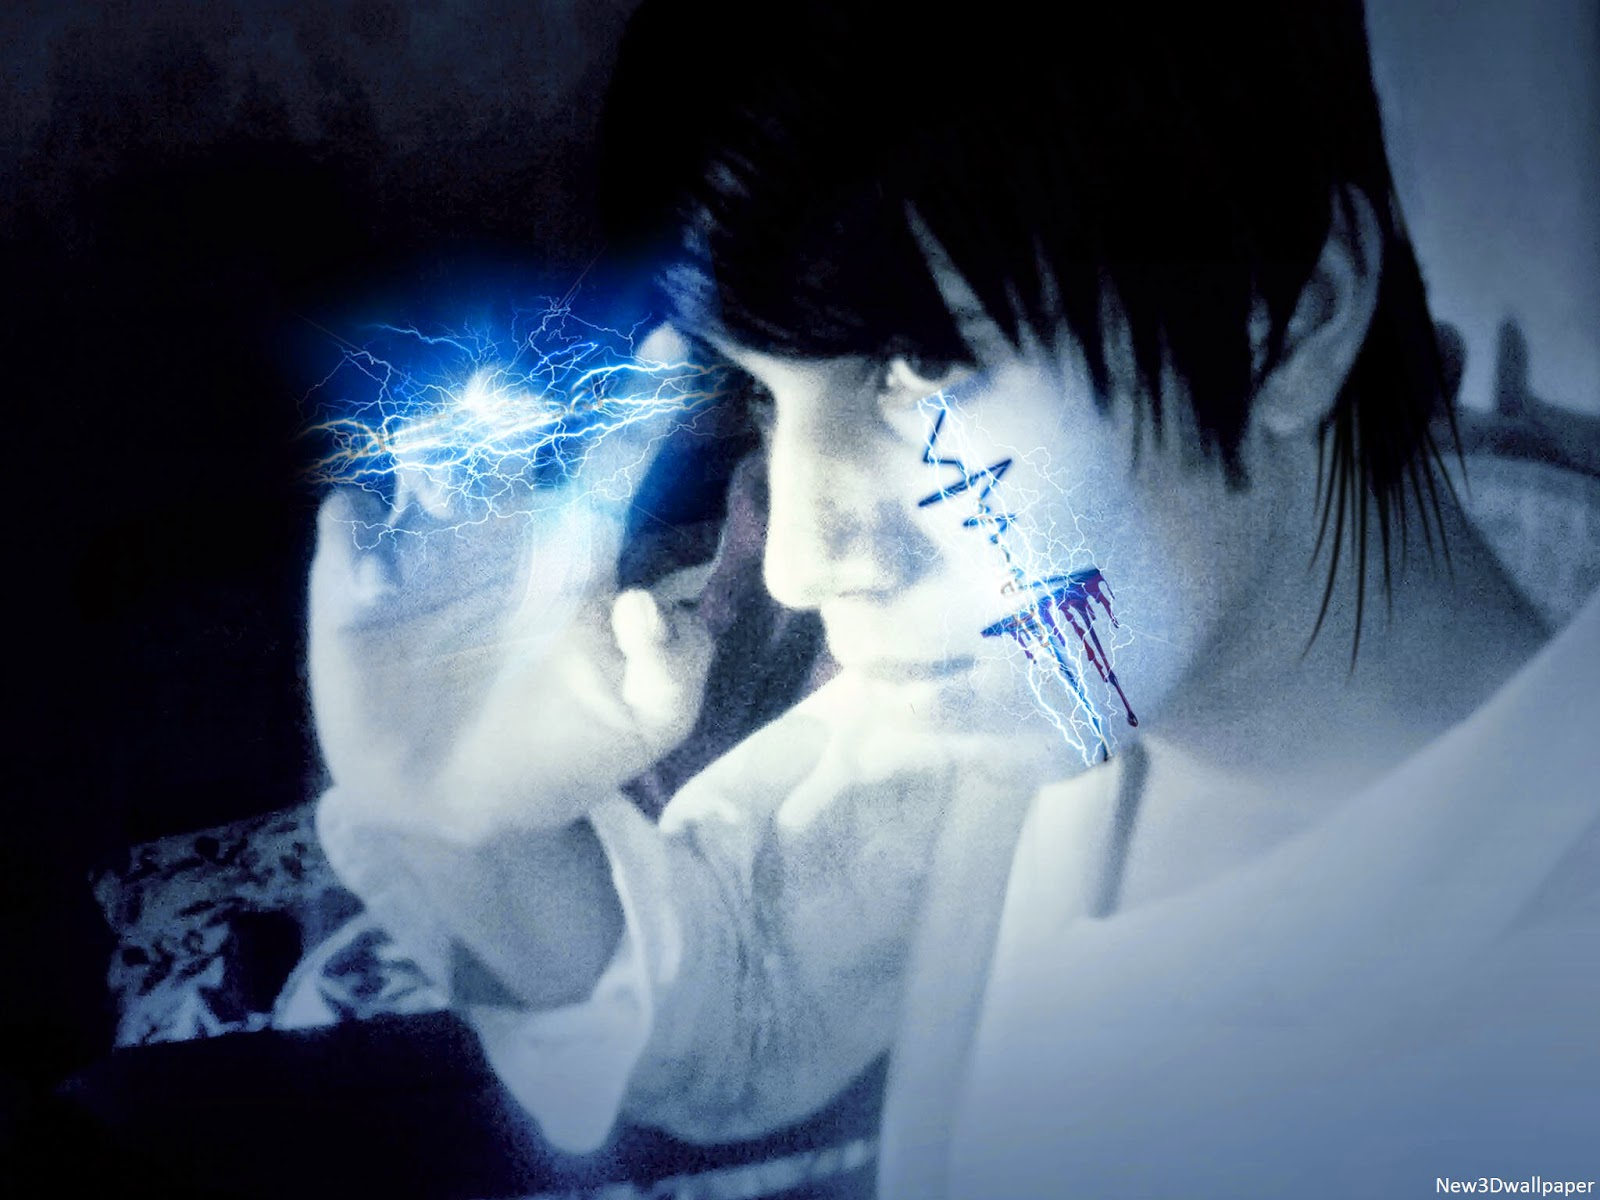 Sad Emo Boys Wallpapers 171 NEW 3D WALLPAPER 1600x1200